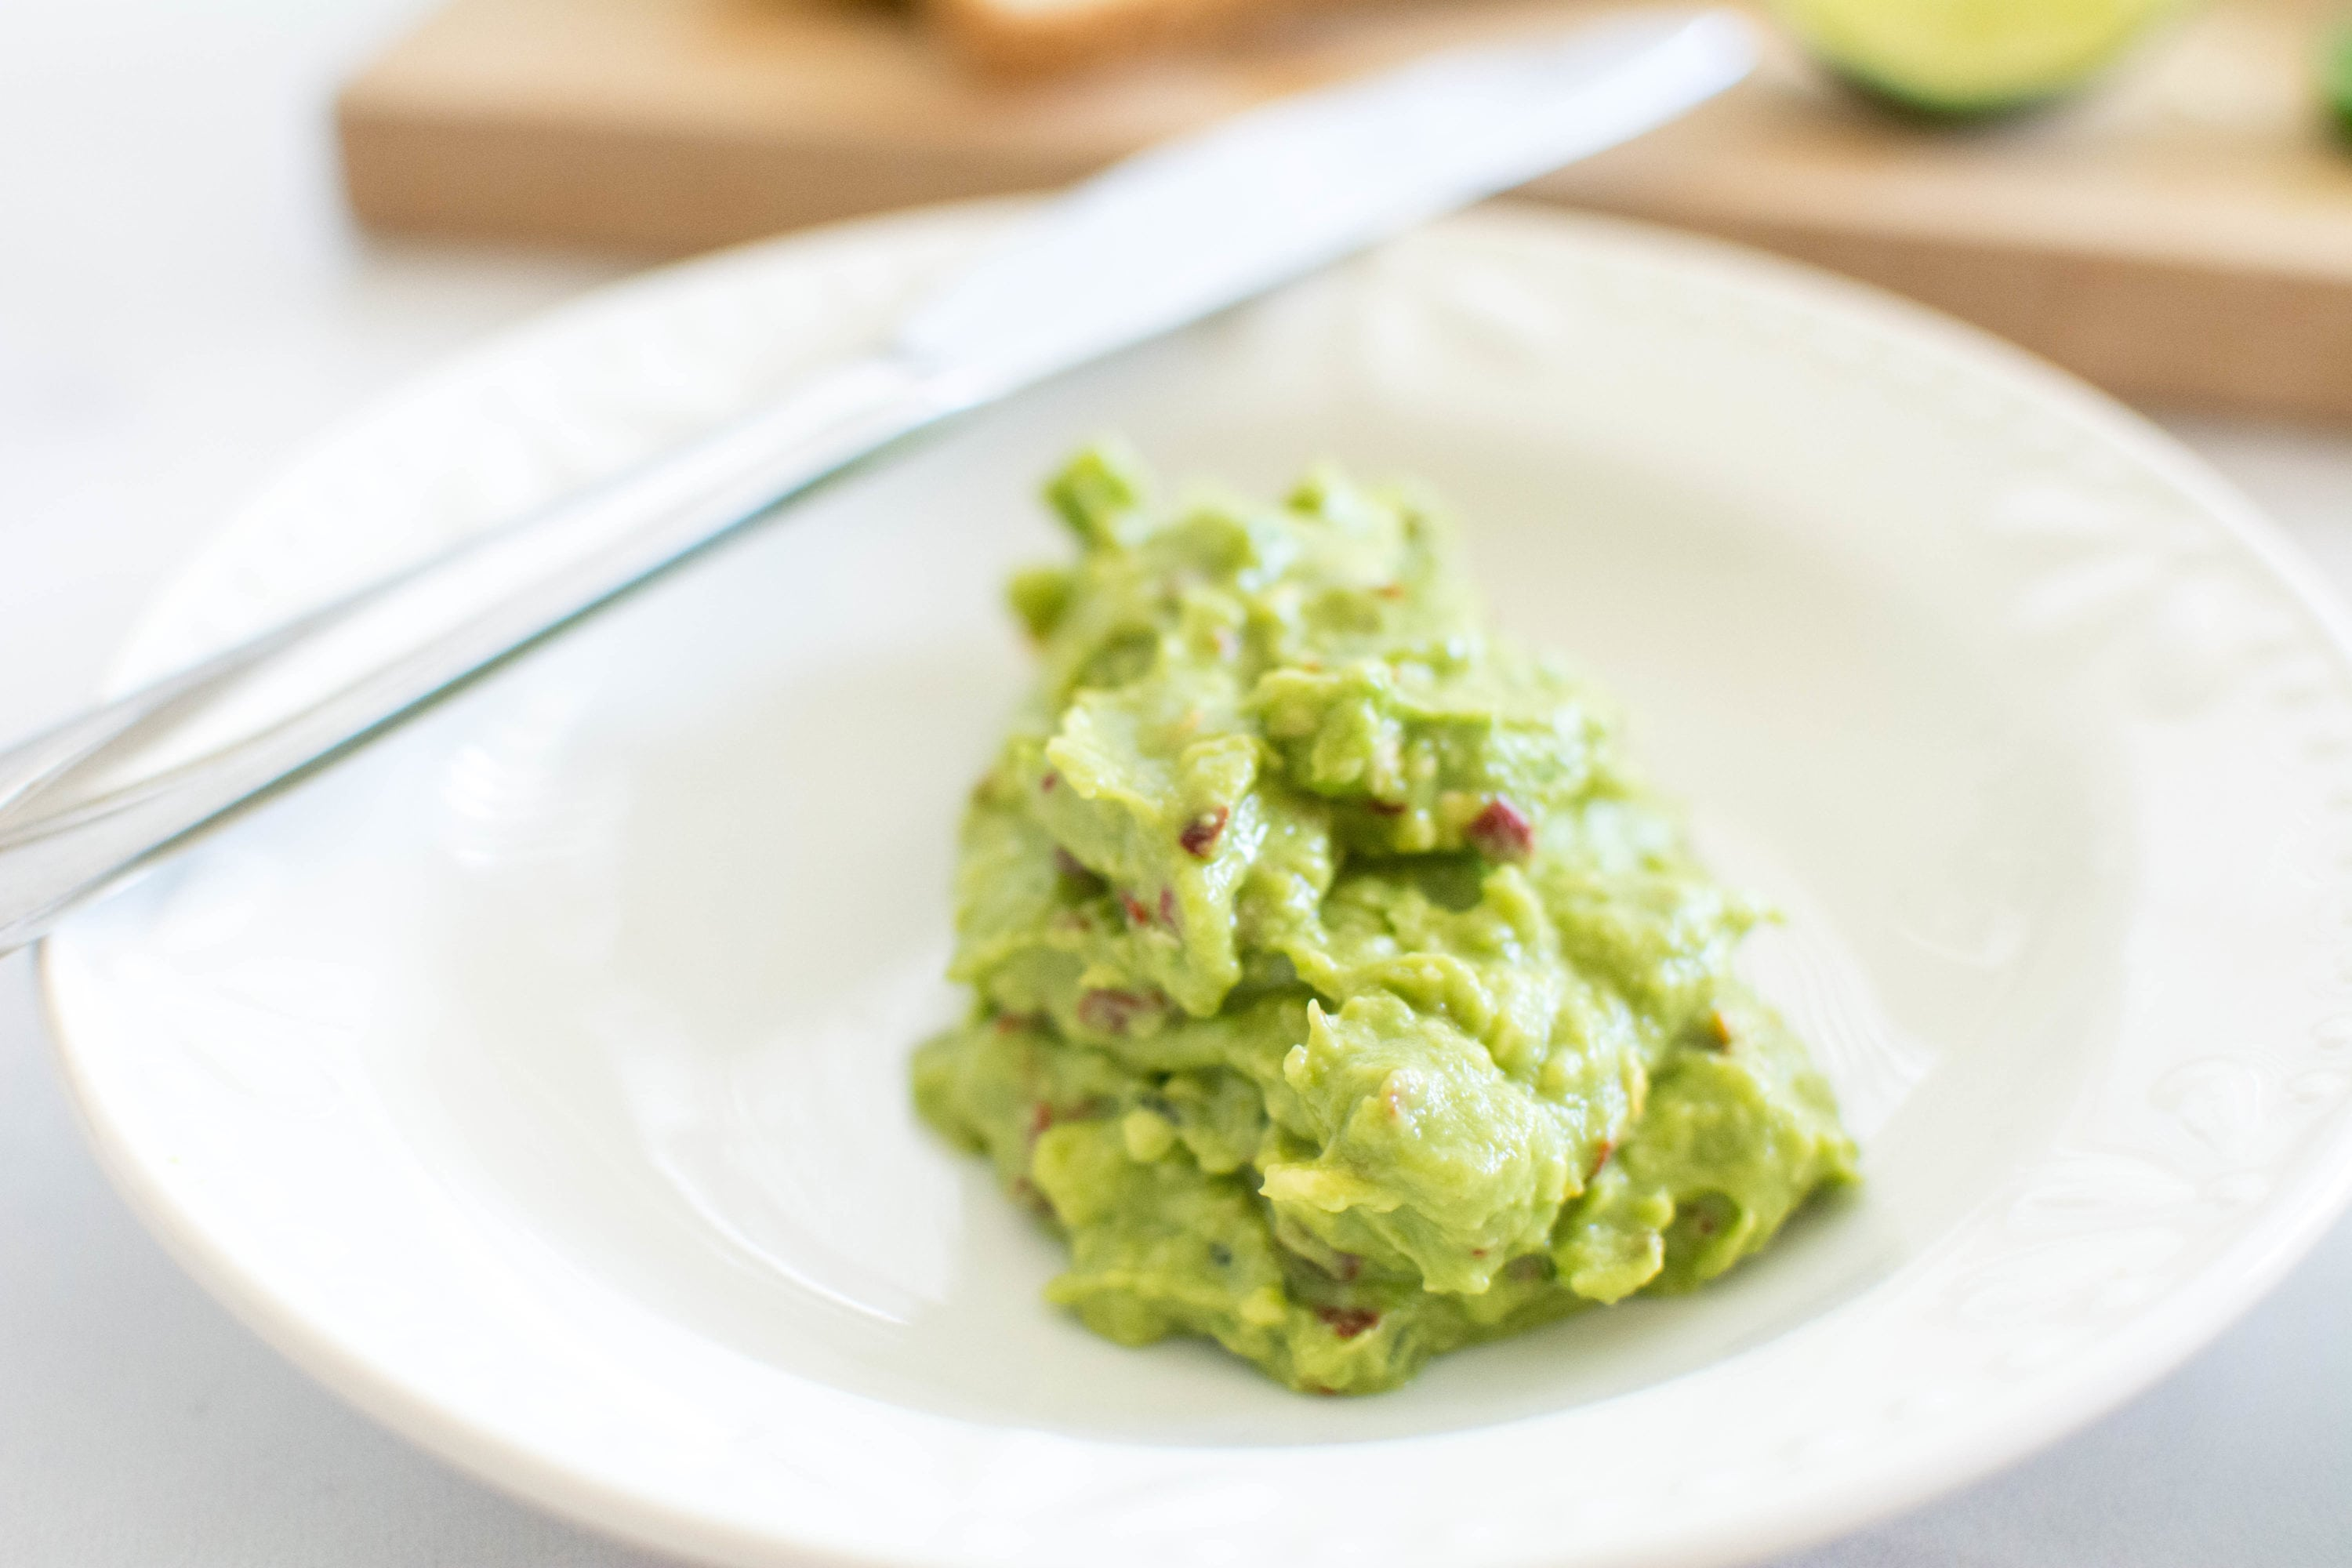 spicy avocado spread